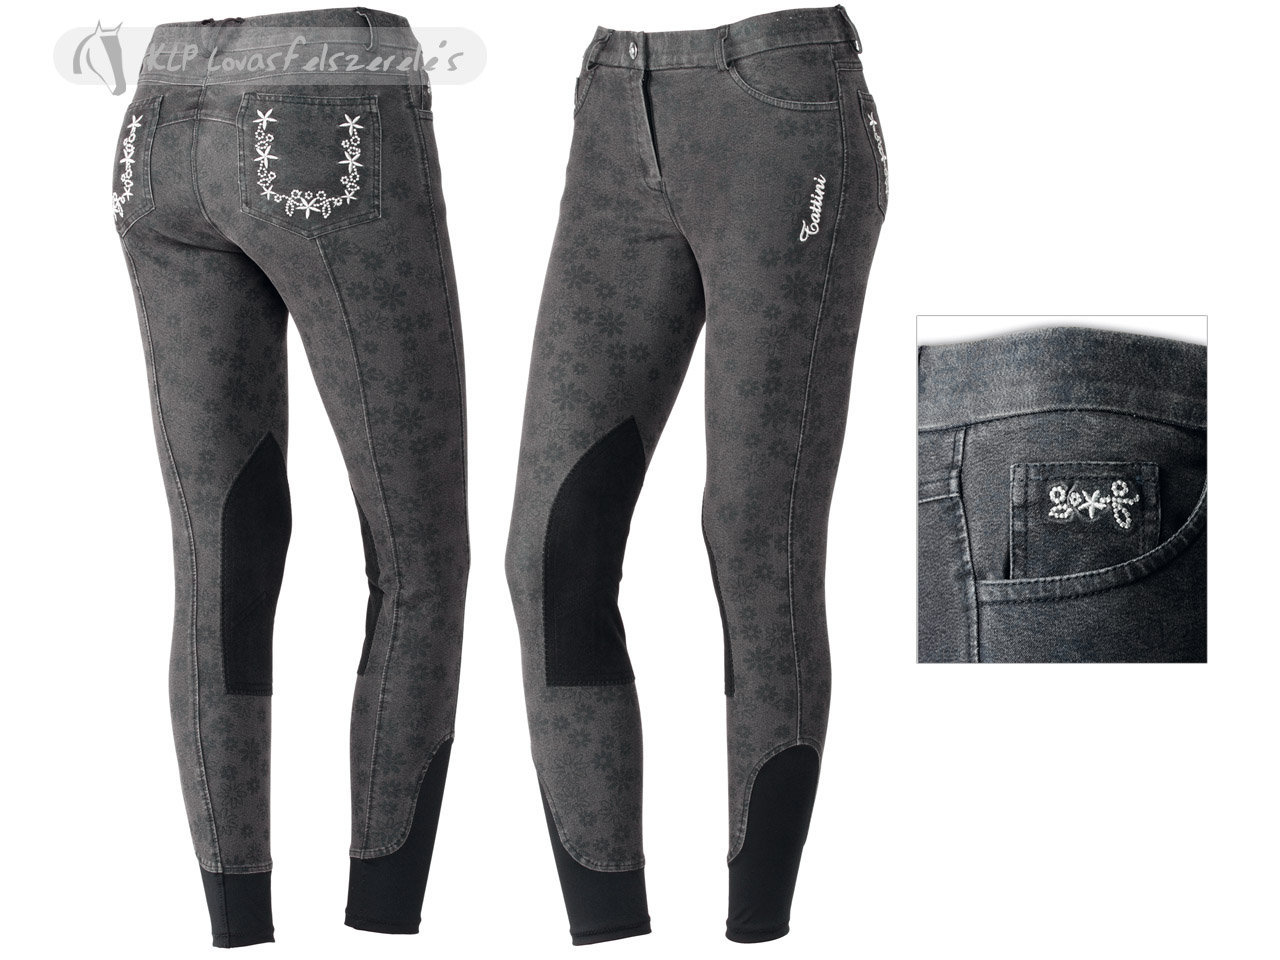 Tattini Denim Flower-Printing Ladies Breeches With Suede Knee Patch